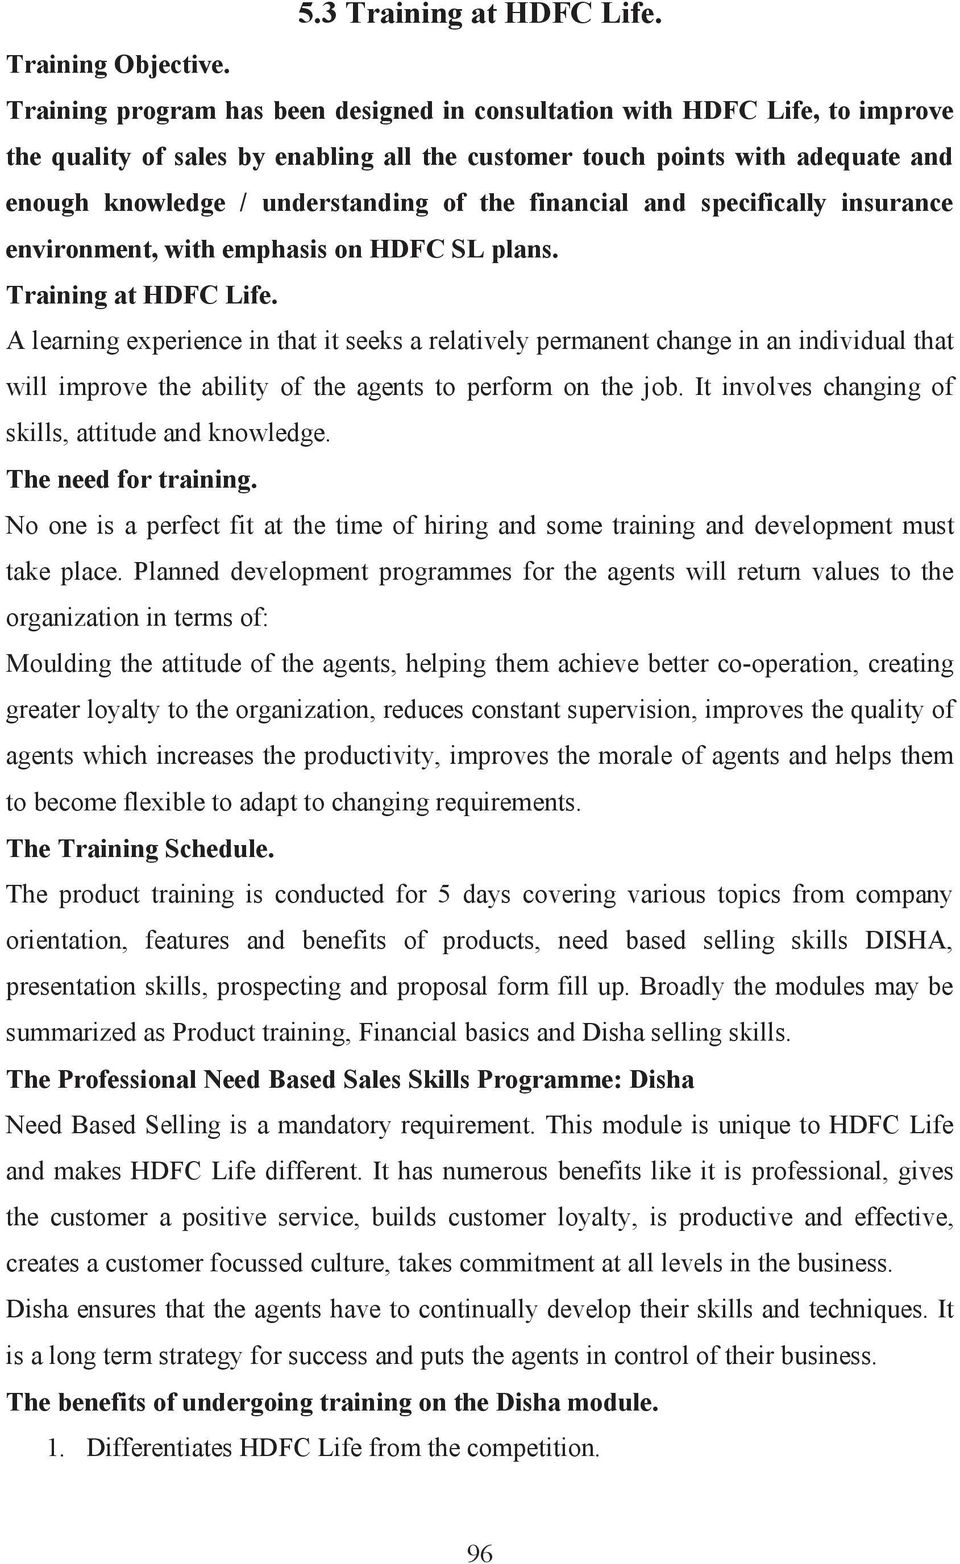 financial and specifically insurance environment, with emphasis on HDFC SL plans. Training at HDFC Life.